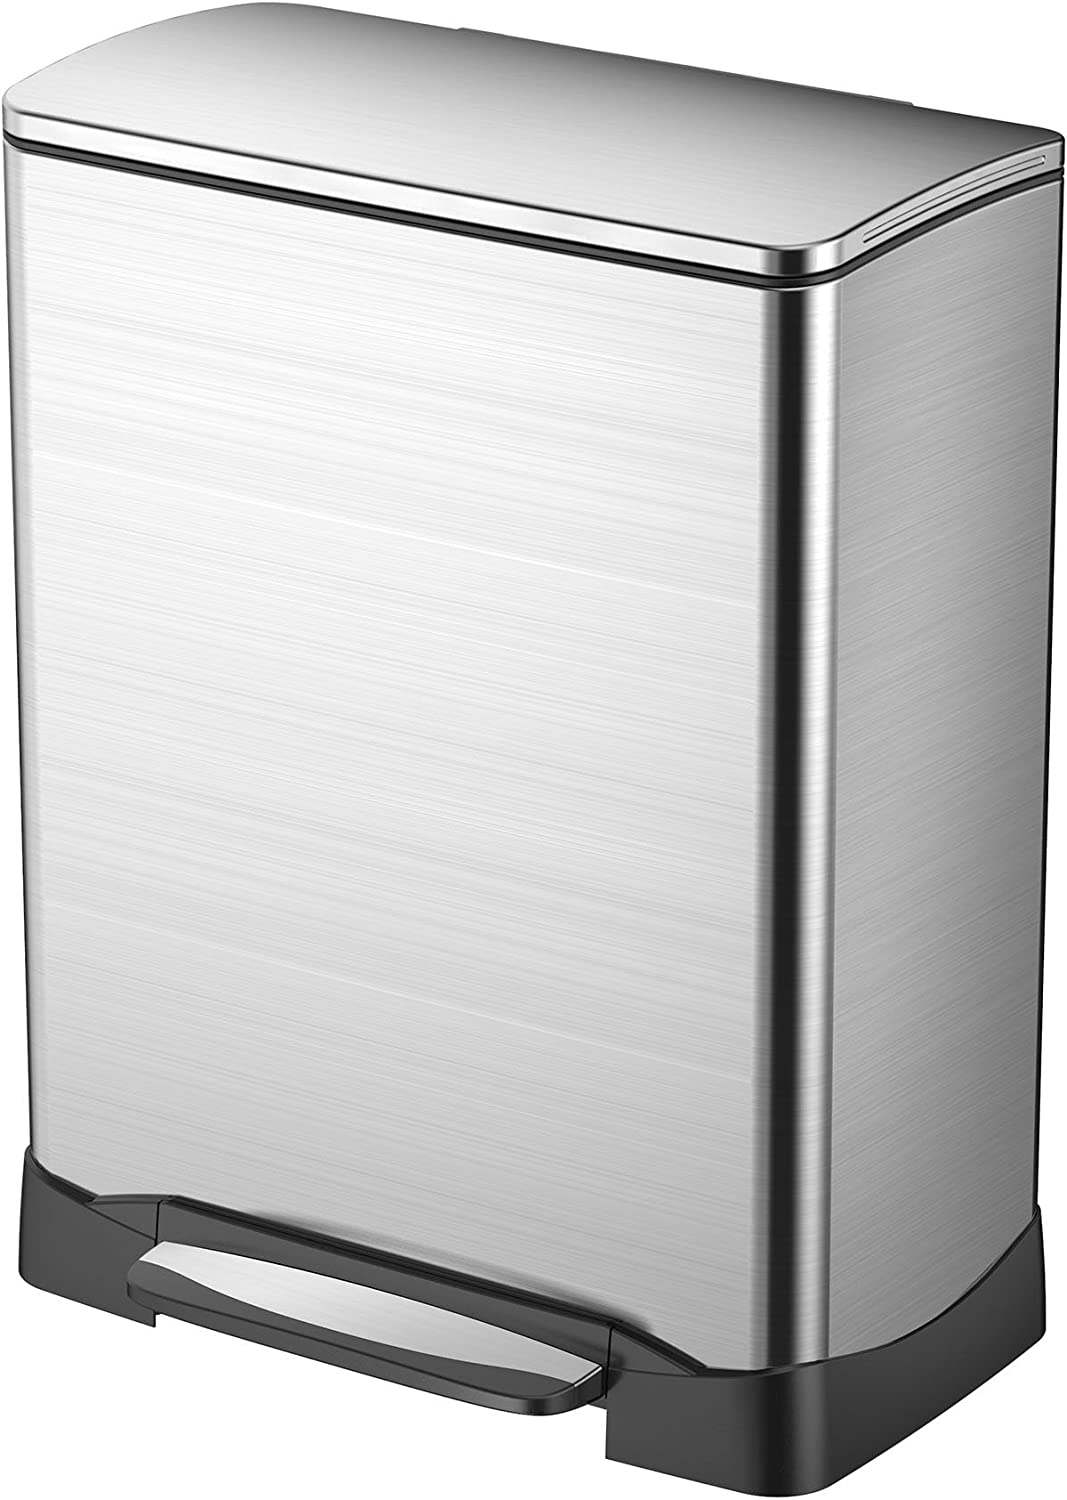 Sale Special Price EKO 92615-1 Neo Cube 13.2 Gallon Step Max 79% OFF Can Trash Steel Stainless